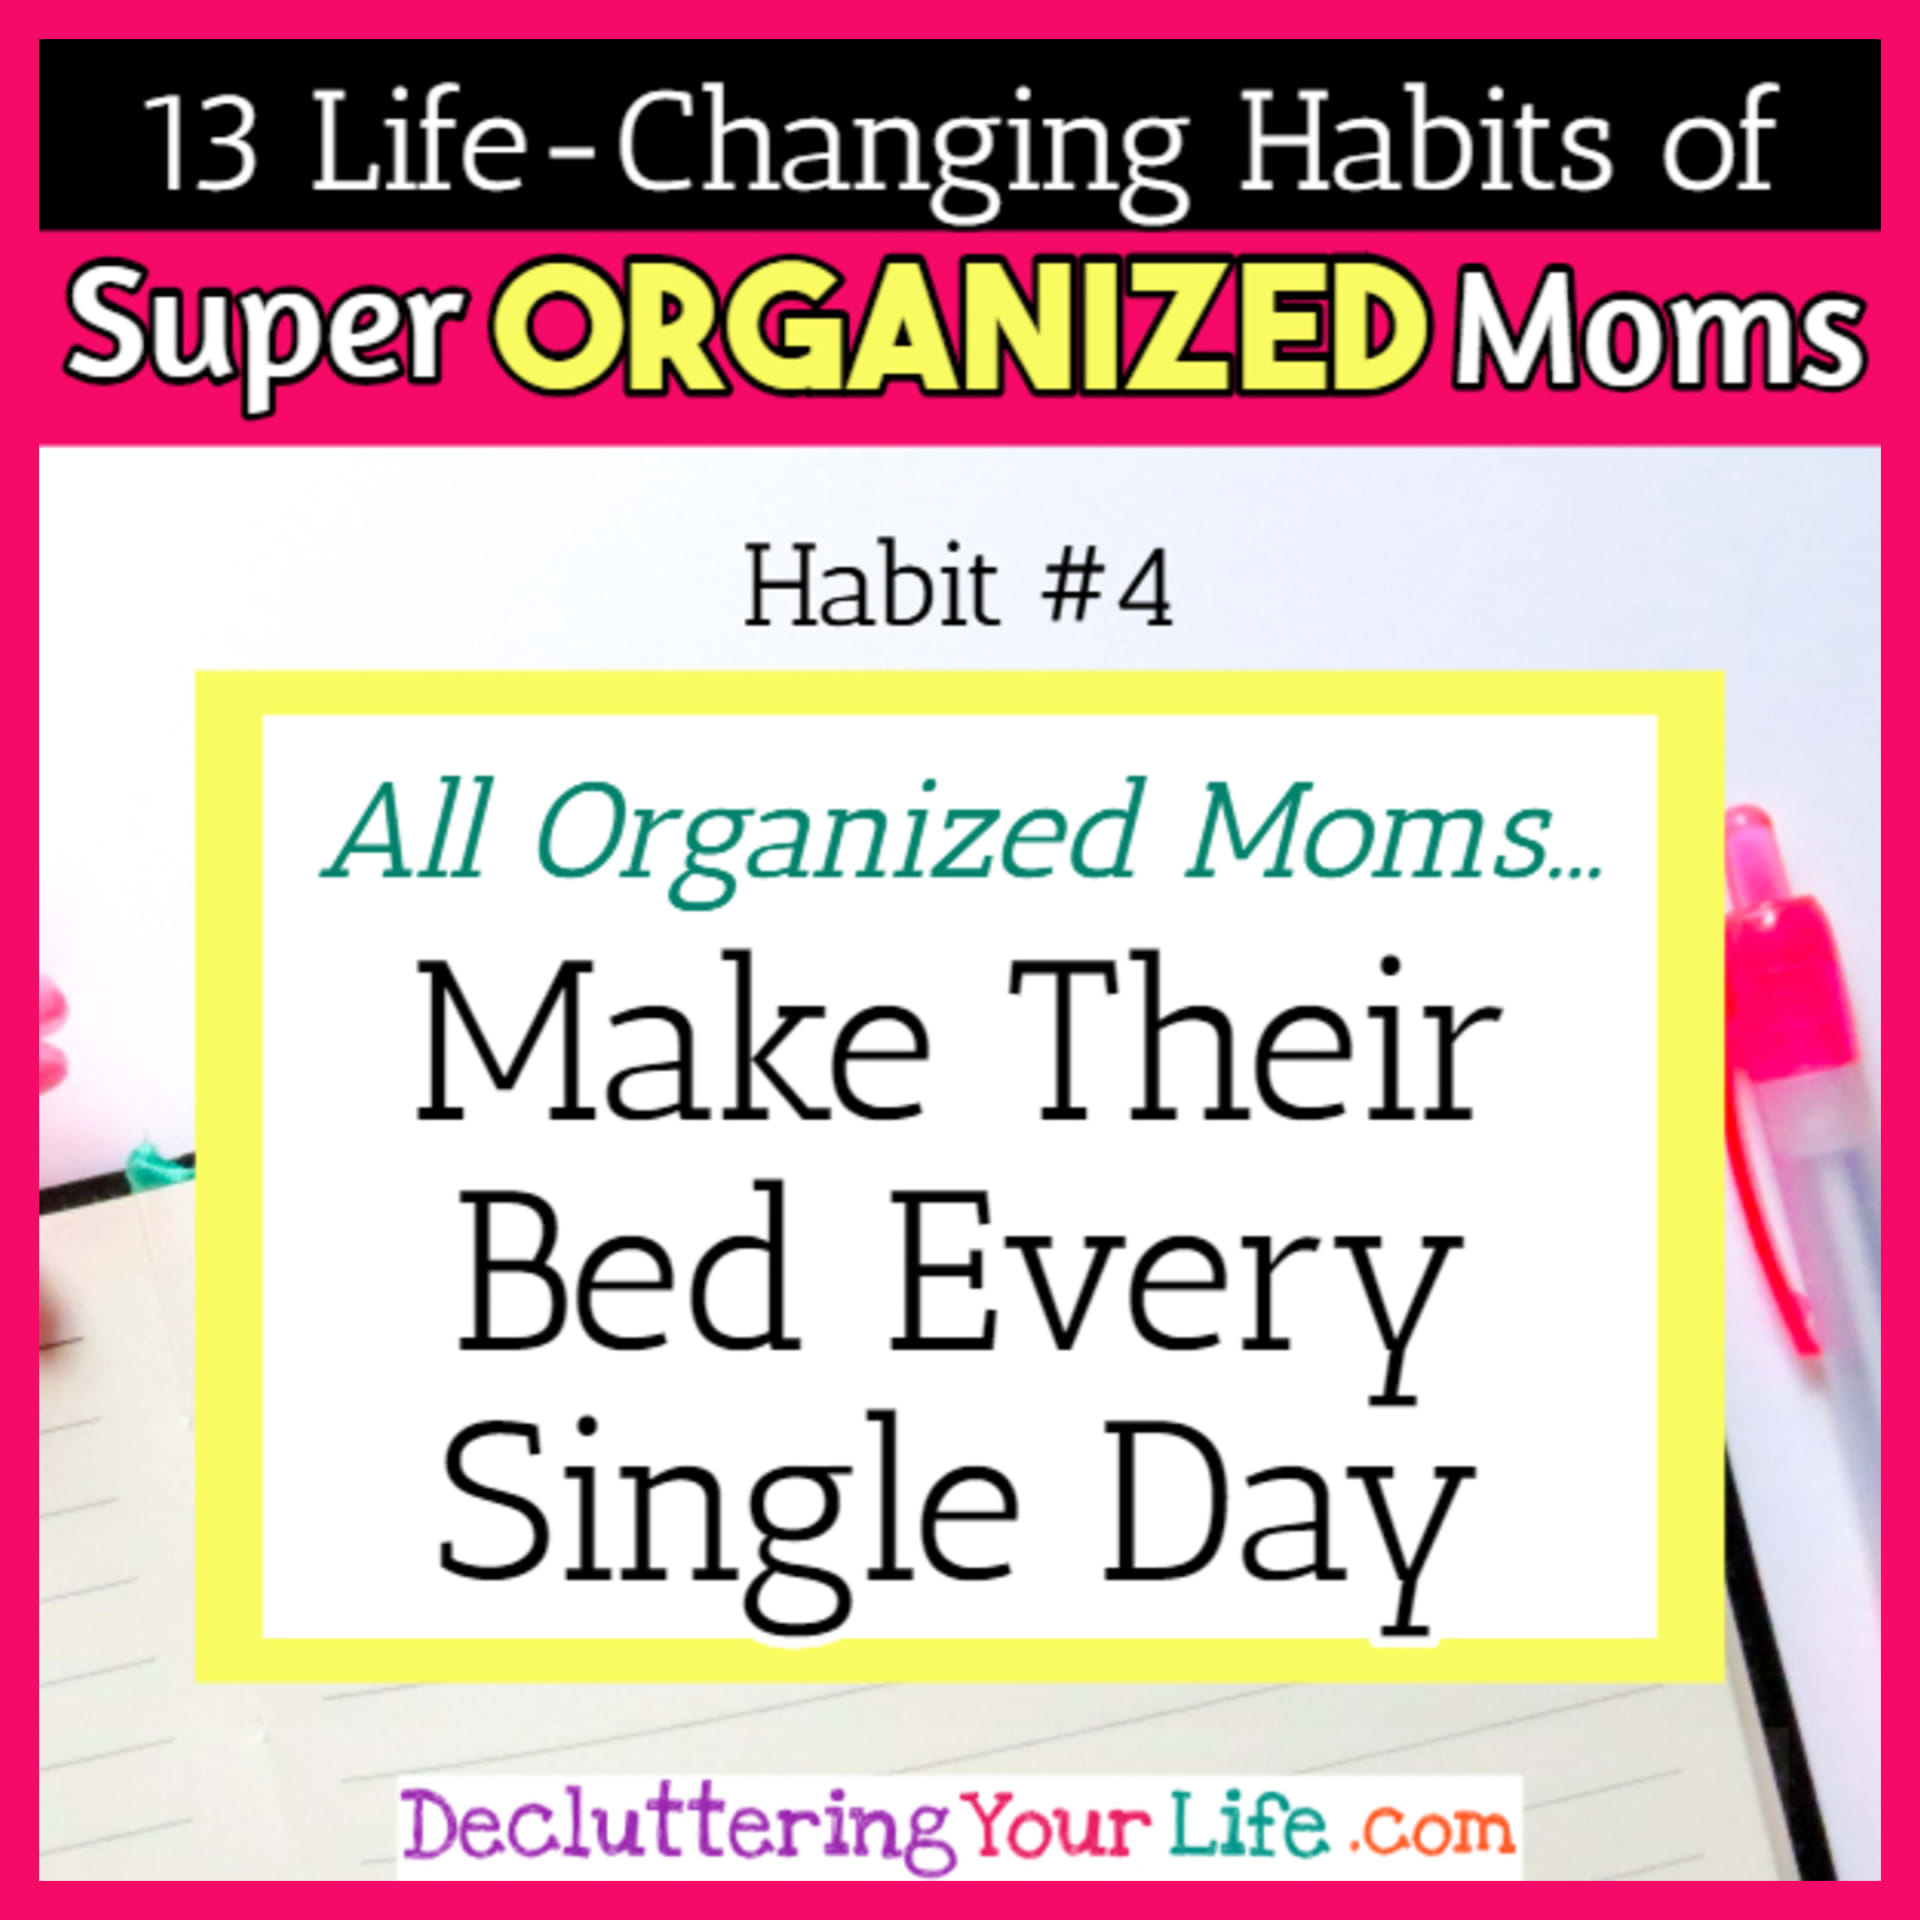 Organized moms know the benefits of a clean house and start their day making their bed - 13 Habits of Super Organized Mom - How To Be An Organized Mom (whether you work OR stay at home)